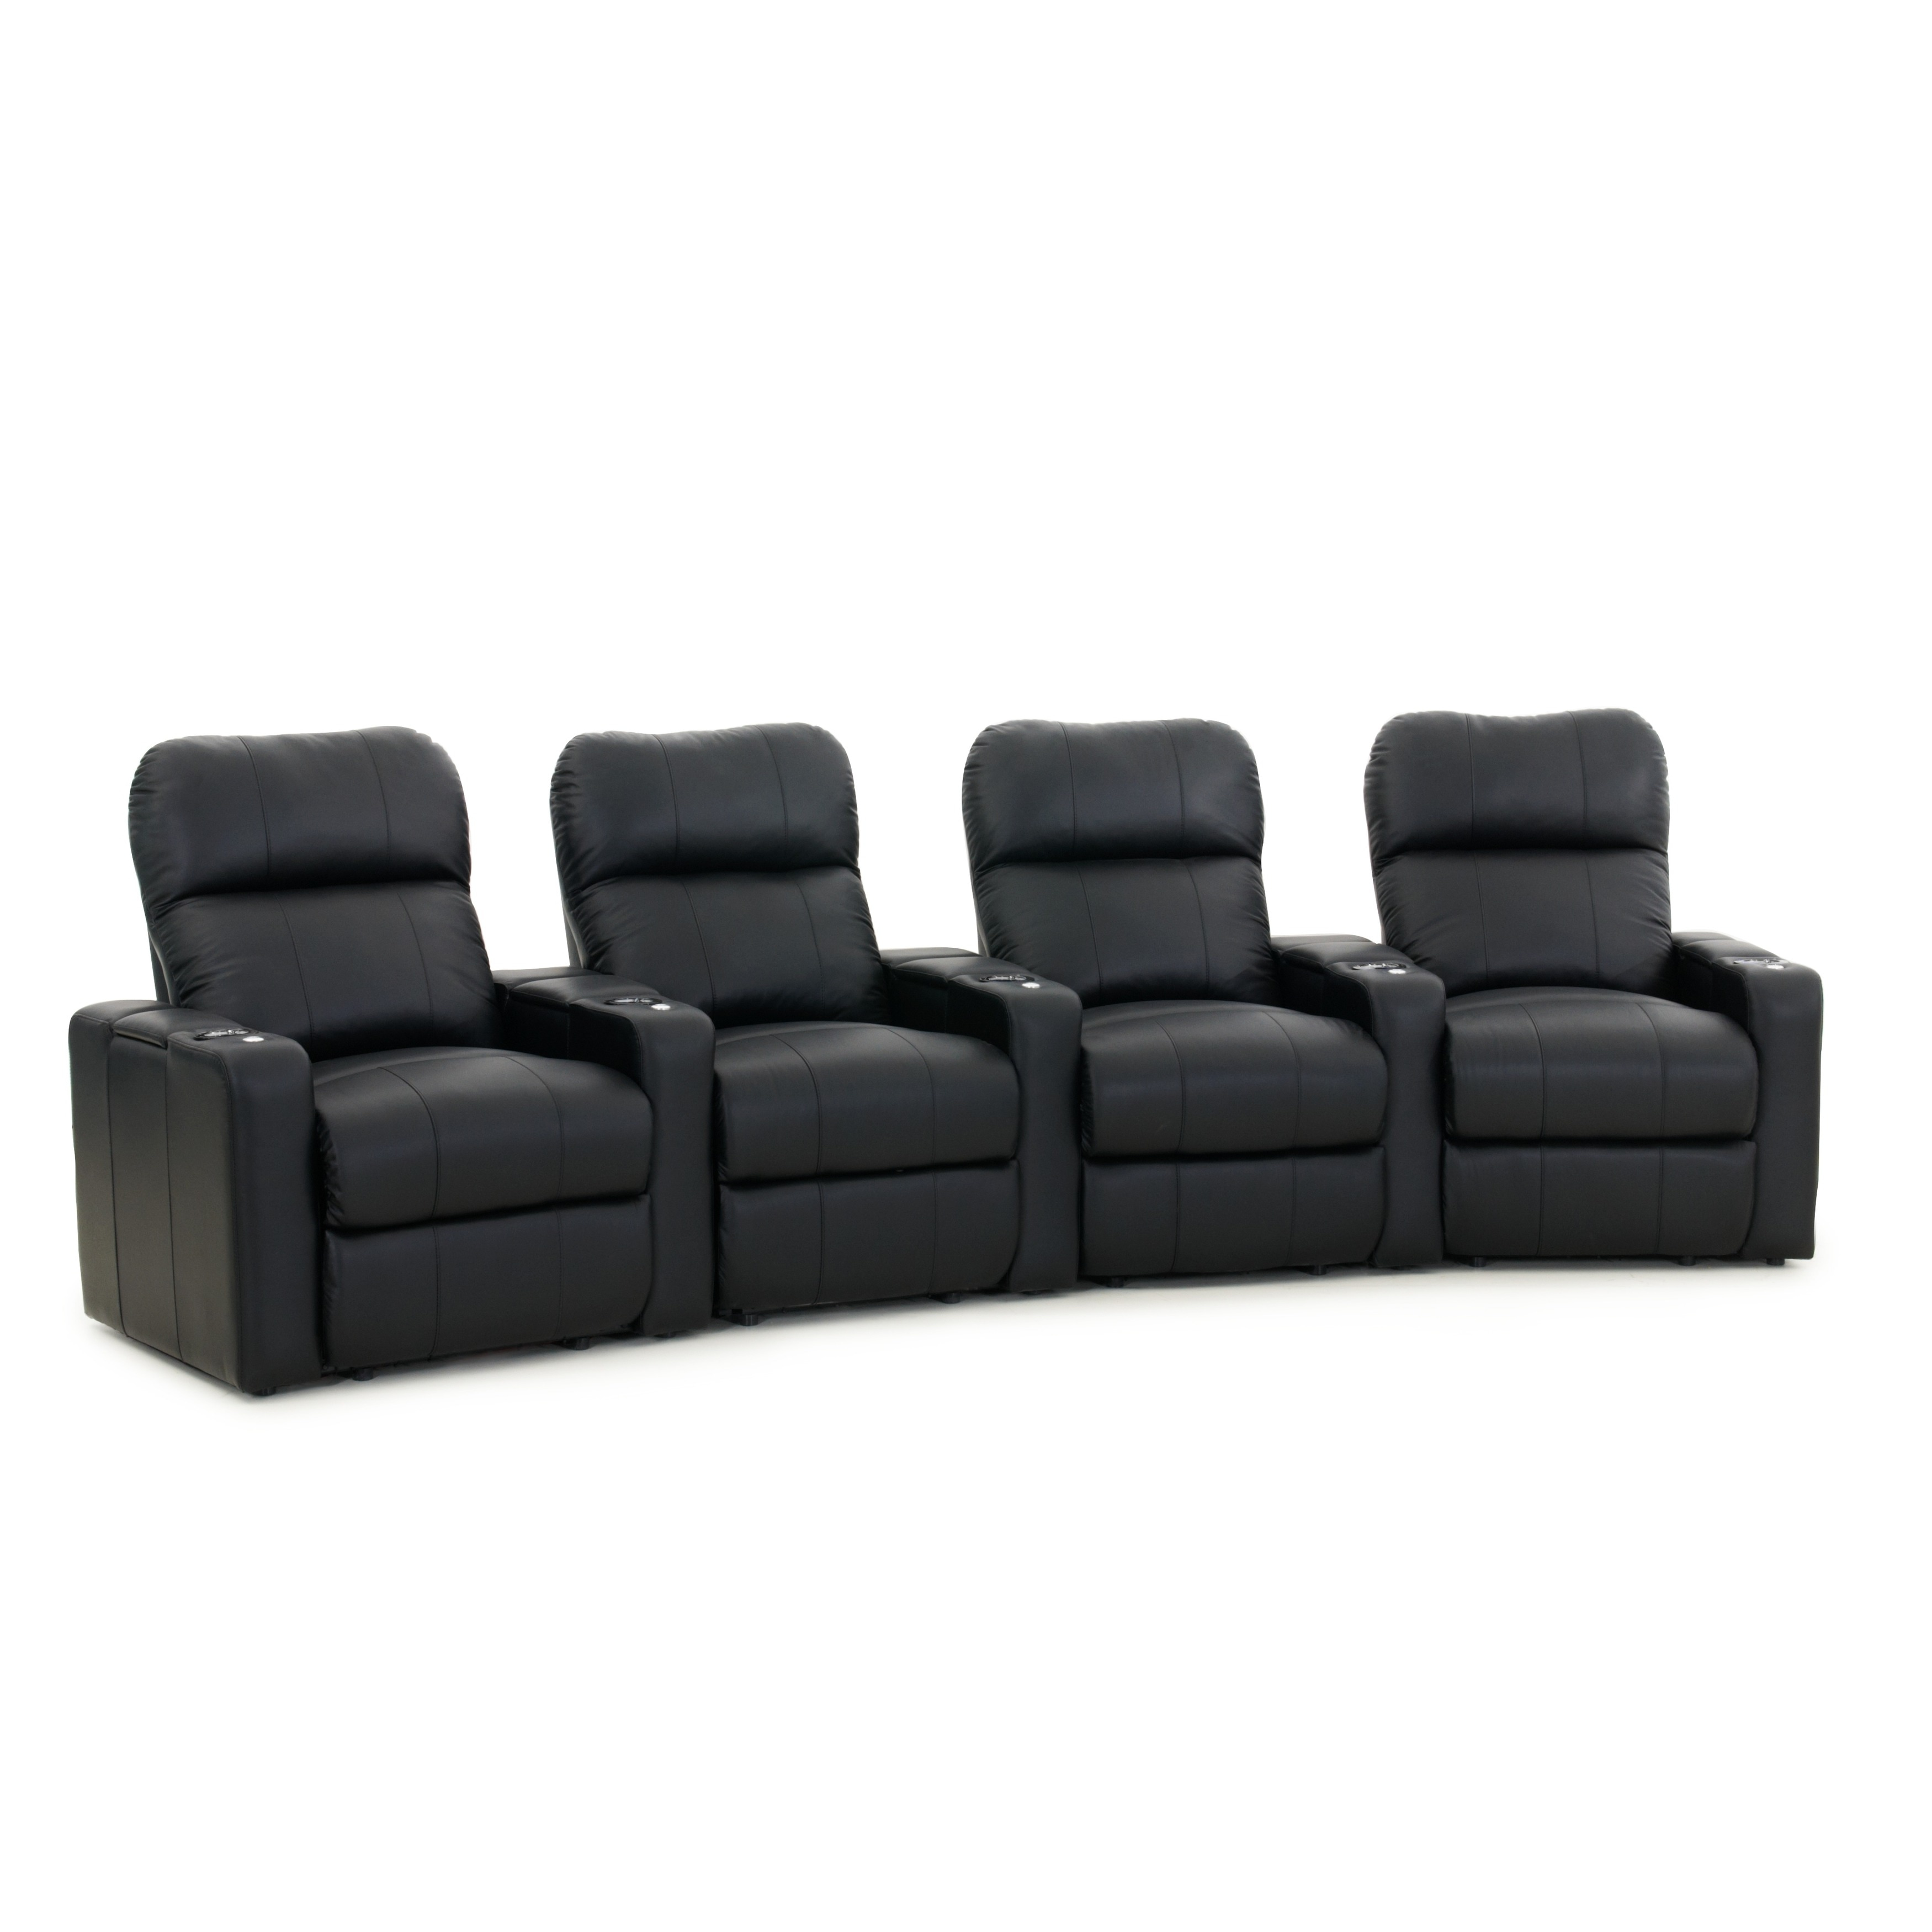 Octane Turbo Xl700 Curved Recline Black Premium Leather Home Theater Seating Row Of 4 Free Shipping Today 10656568